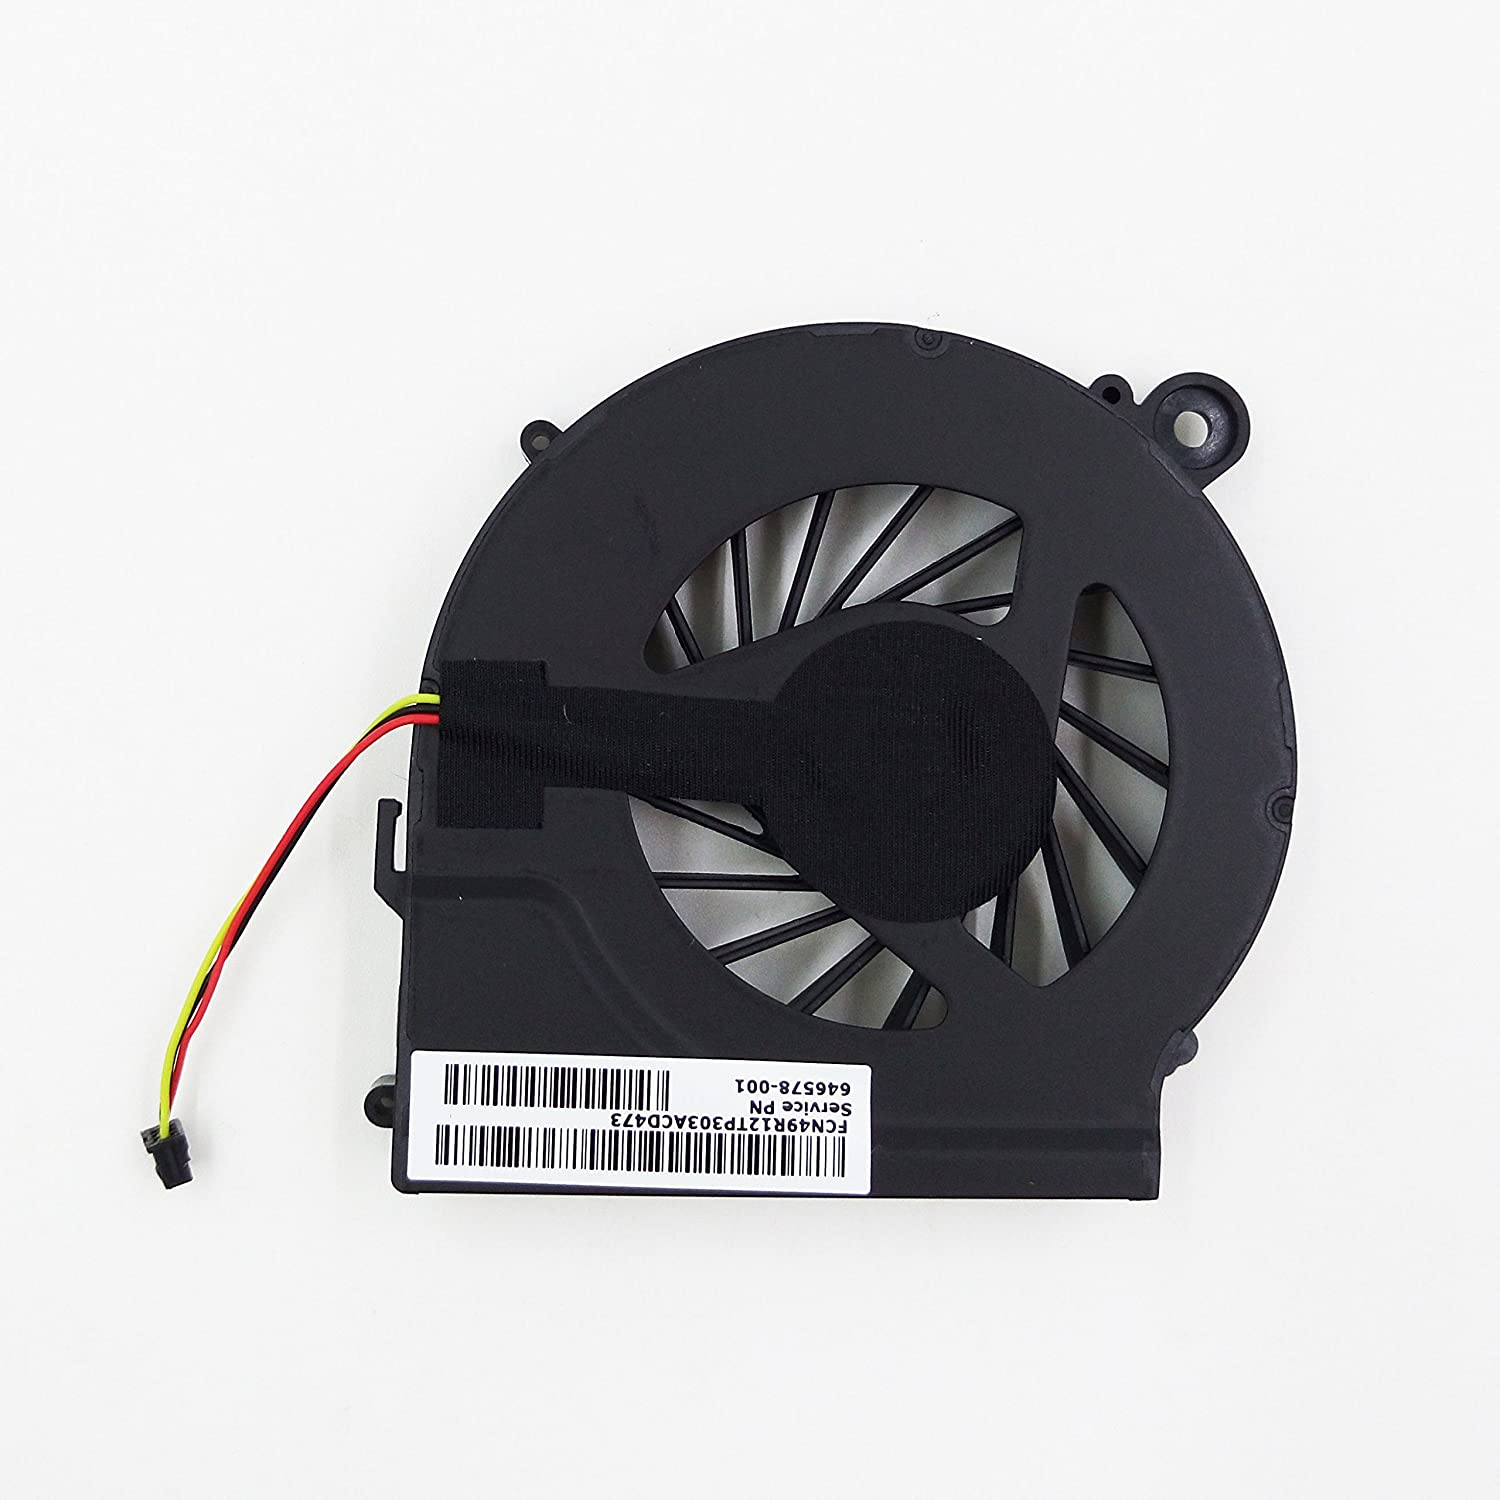 New Laptop CPU Cooling Fan for HP Compaq G62 G42 CQ42 CQ62 series, Compatible with 646578-001 606609-001 KSB06105HA